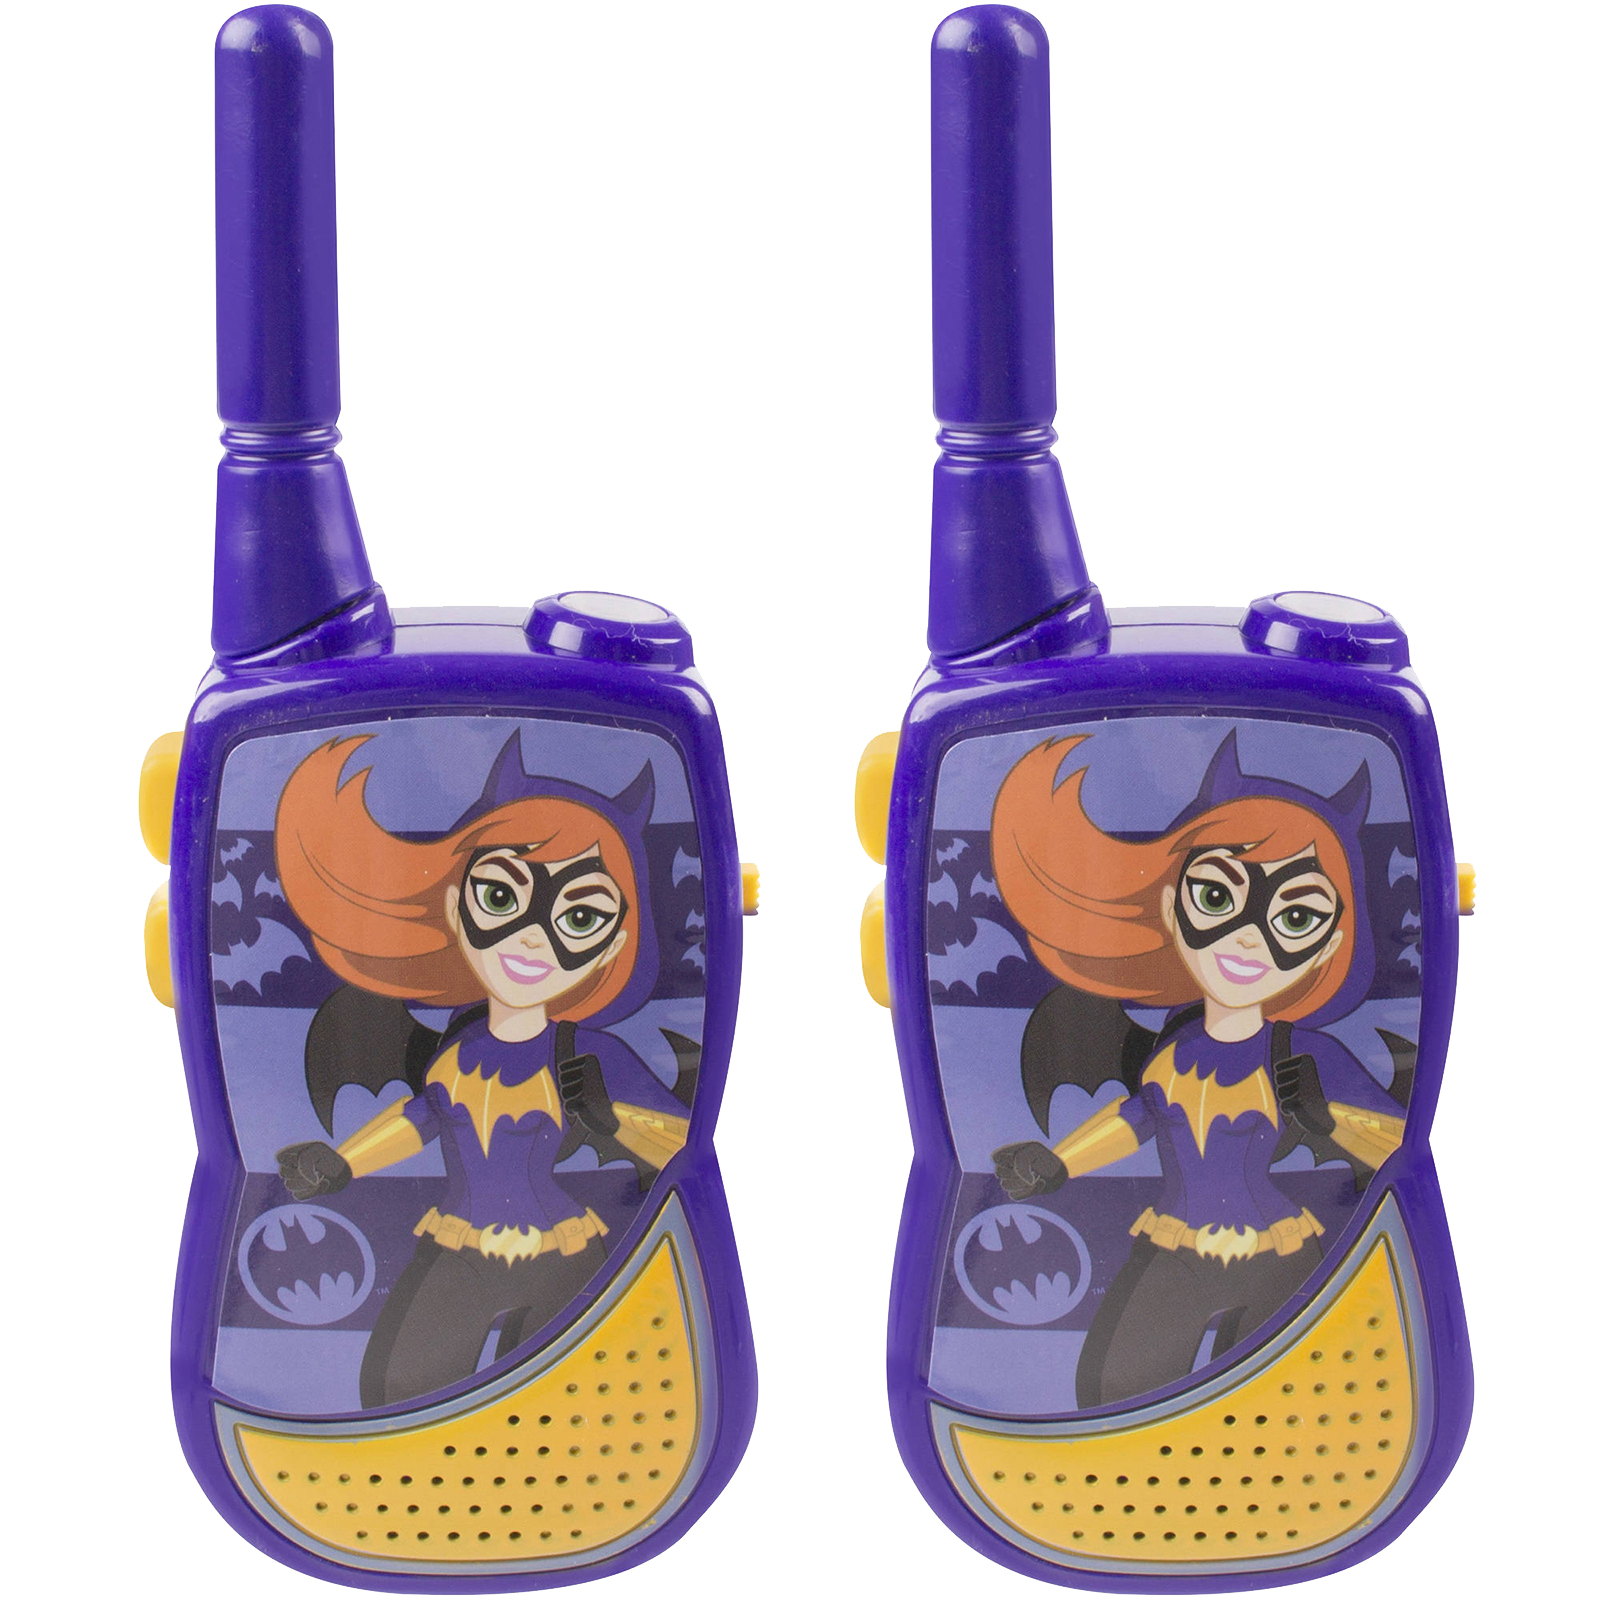 Superhero Girl Night Action 2-in-1 Walkie Talkie with Built-in Flashlight